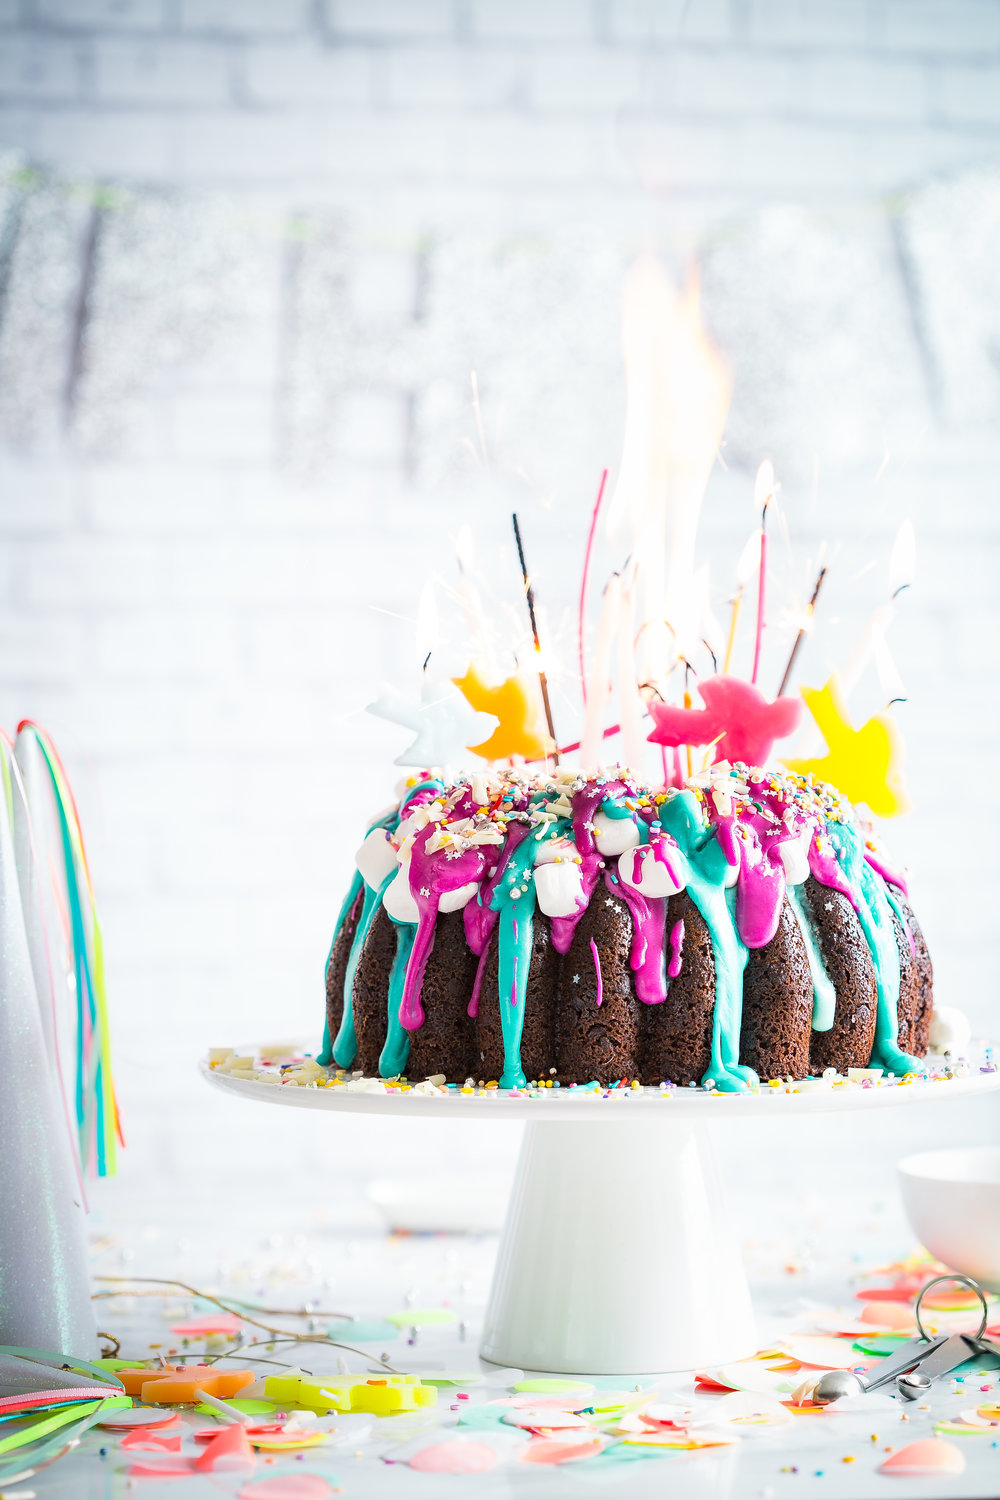 2017-02 Paleo Unicorn Bundt Cake 1 (1 of 1).jpg